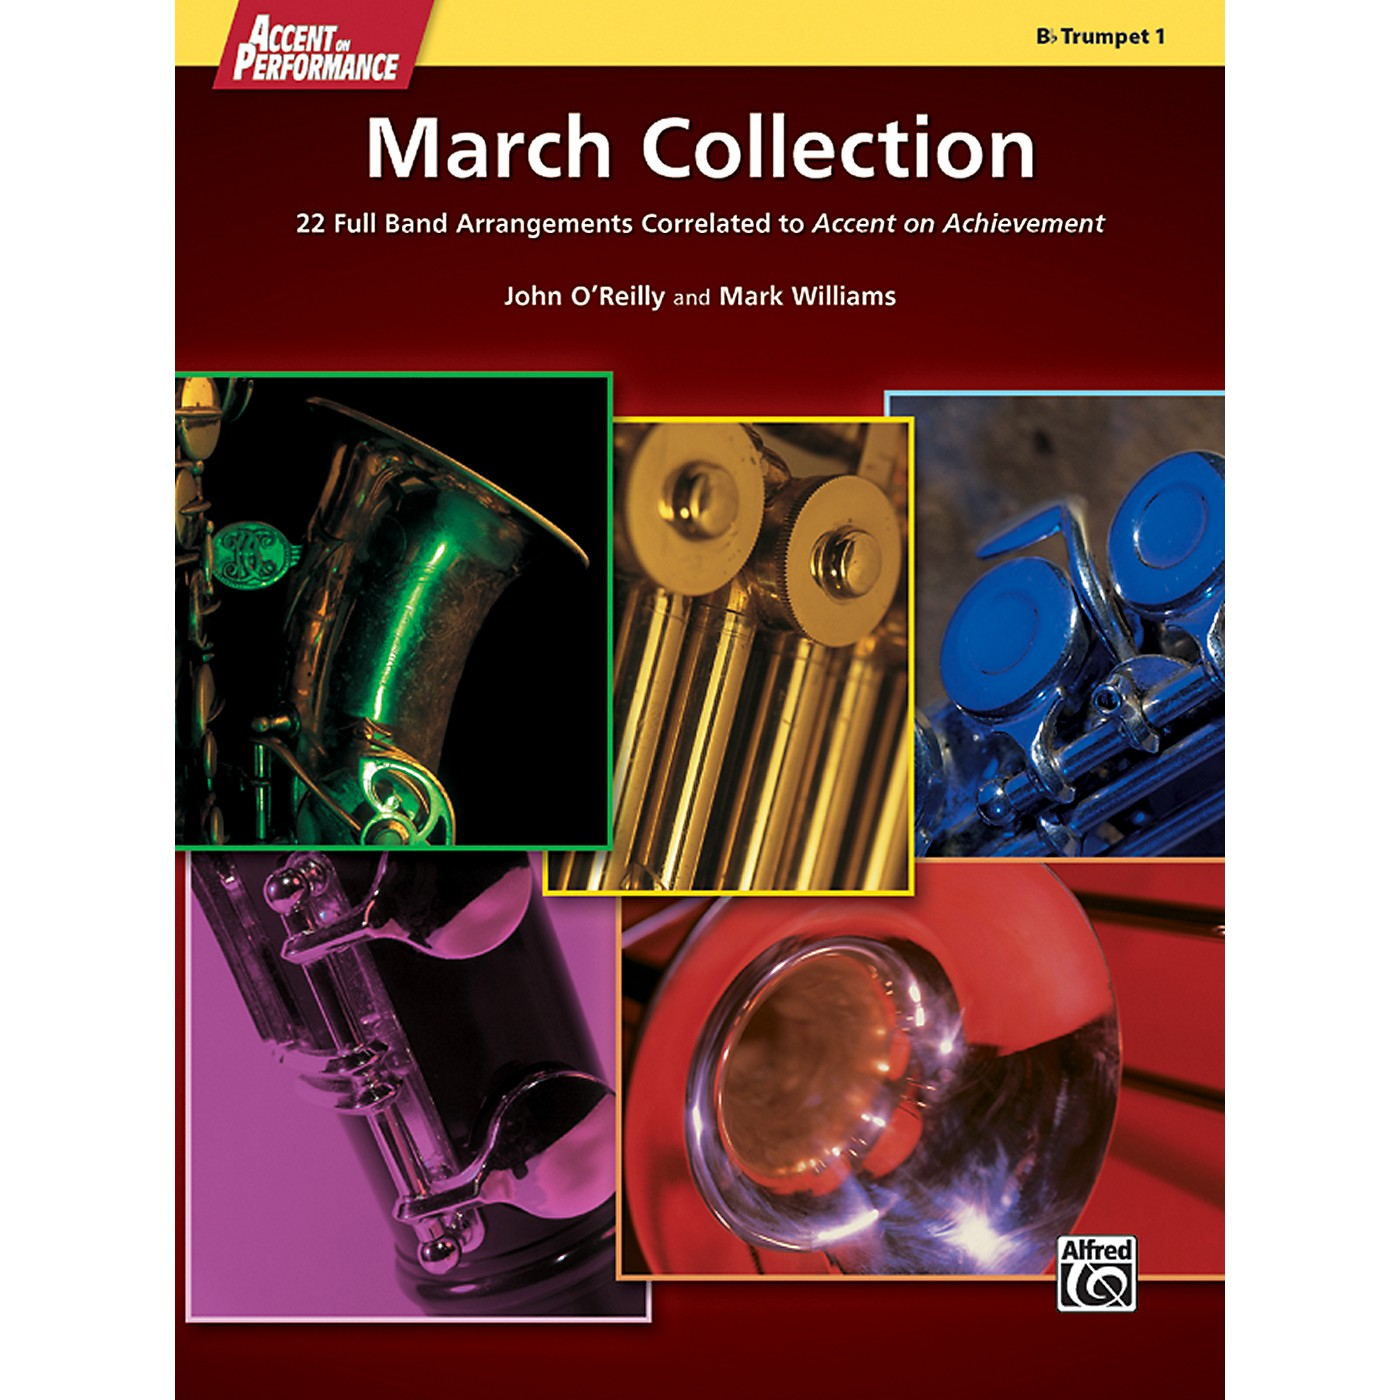 Alfred Accent on Performance March Collection Trumpet 1 Book thumbnail